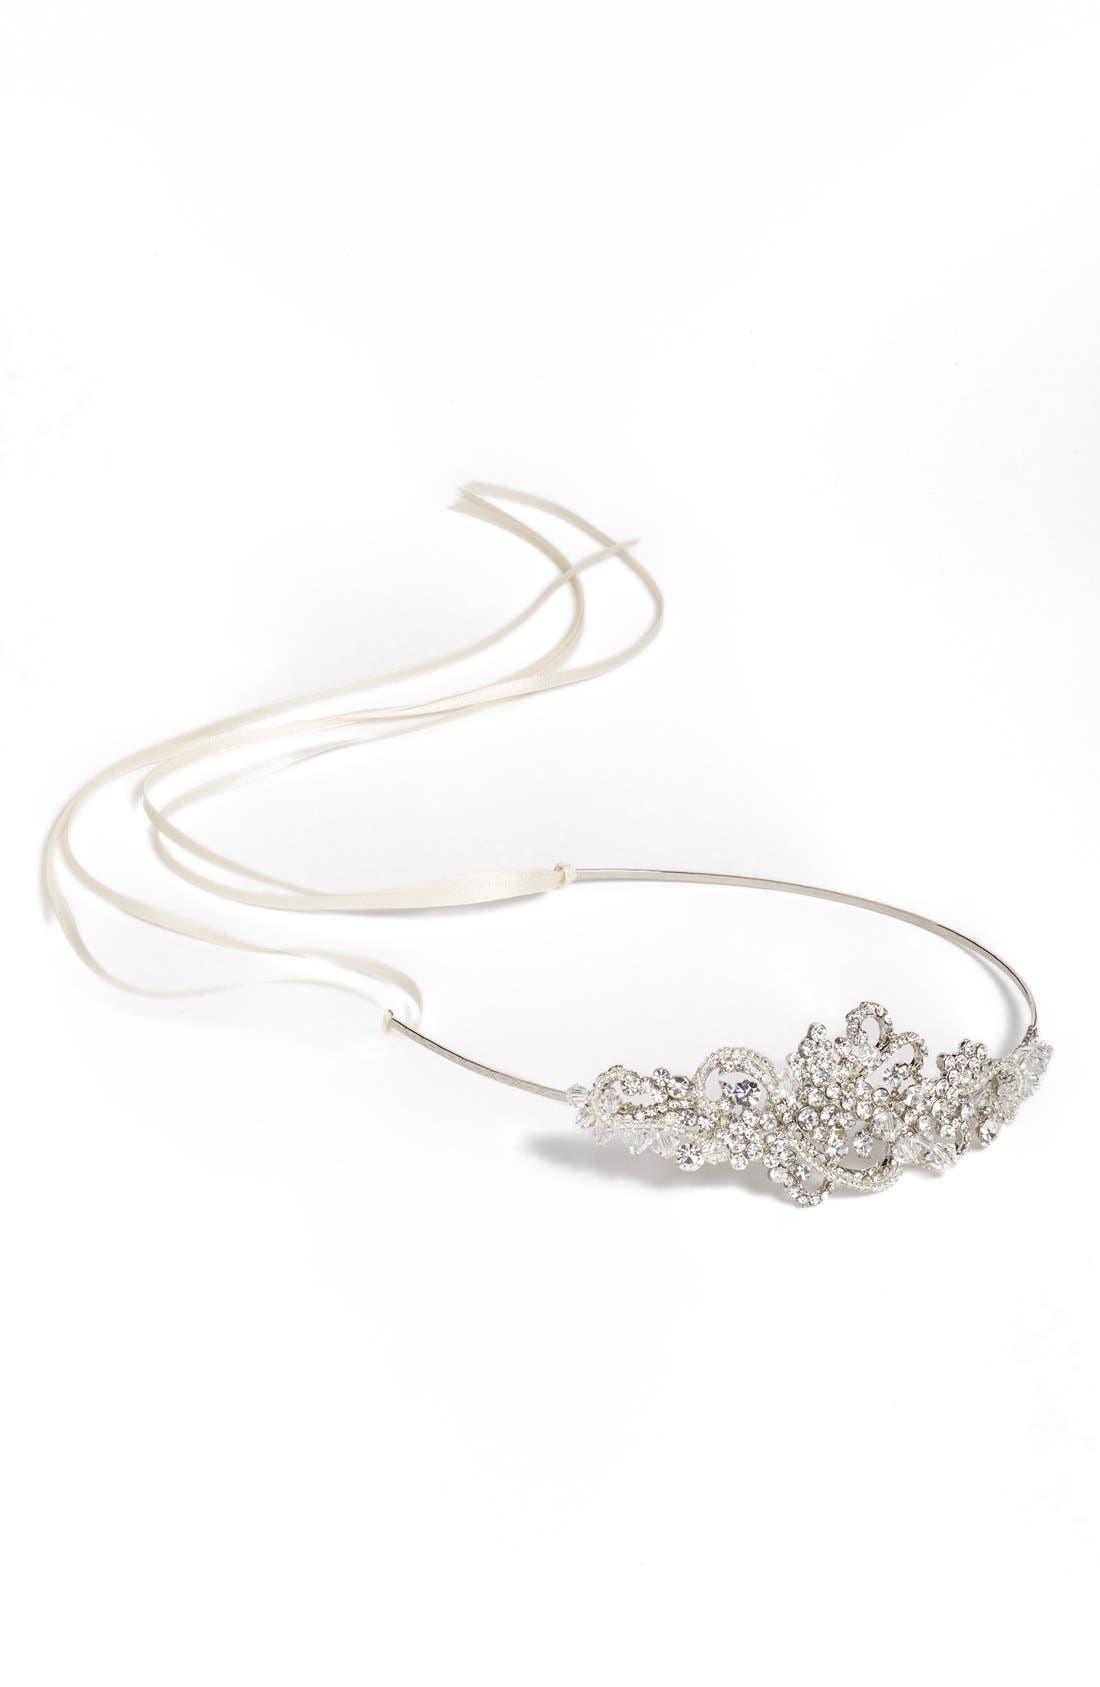 Main Image - Brides & Hairpins 'Aphrodite' Jeweled Head Band